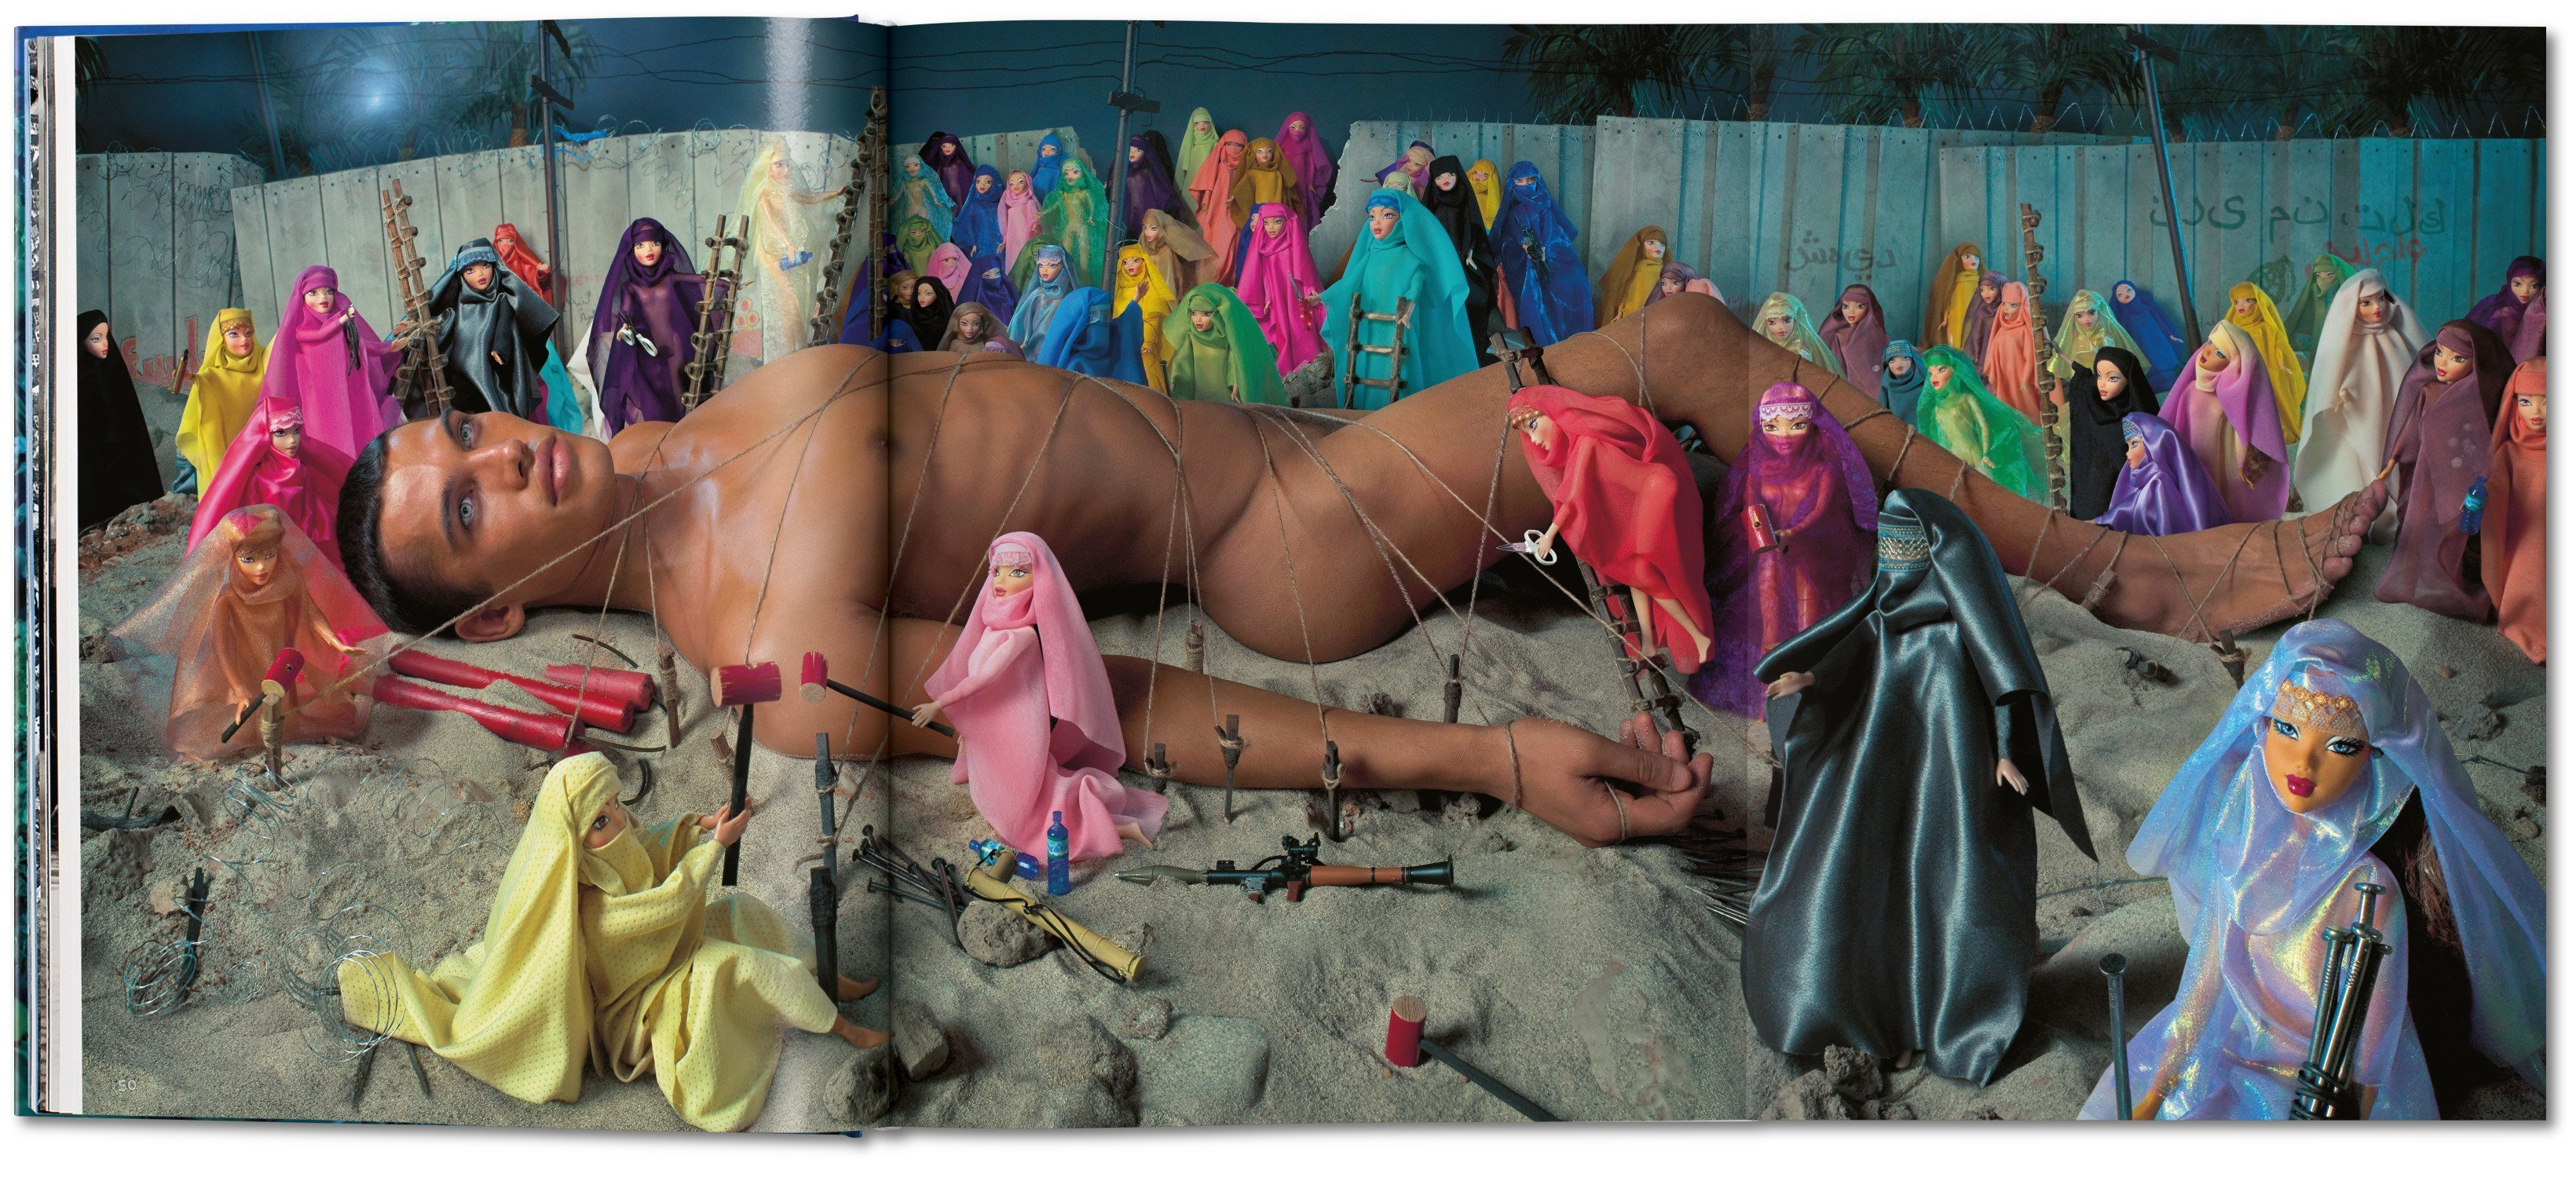 lachapelle_good_news_fo_int_open_0050_0052_05331_1710121043_id_1152569.jpg